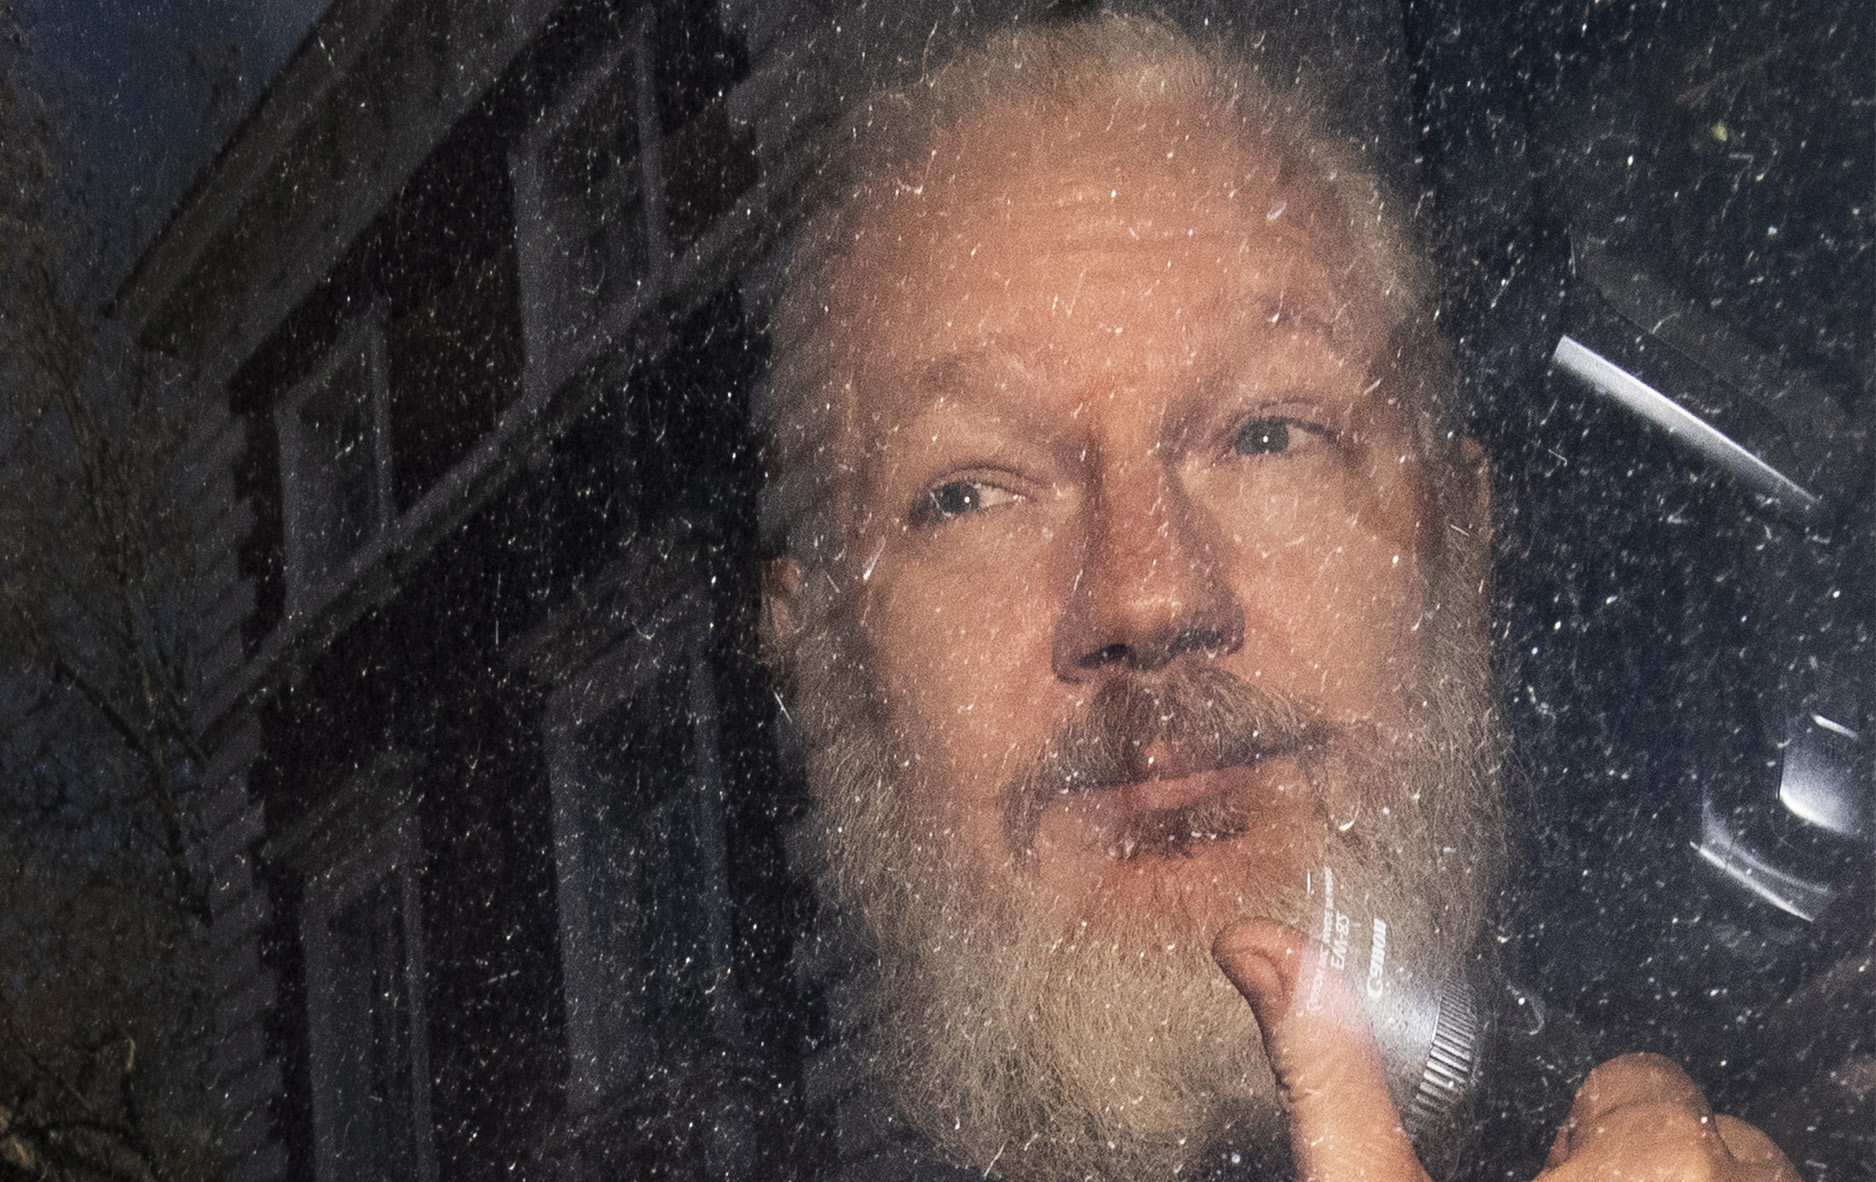 Westlake Legal Group 01_2019_AP19101487775541-copy Ecuador hit with 40 million cyber-attacks since Julian Assange arrest Kaylie Piecuch fox-news/world/world-regions/latin-america fox-news/tech/topics/cybercrime fox-news/person/julian-assange fox news fnc/world fnc article 4f52902e-f909-5e11-85cb-e72bbaeb3cea